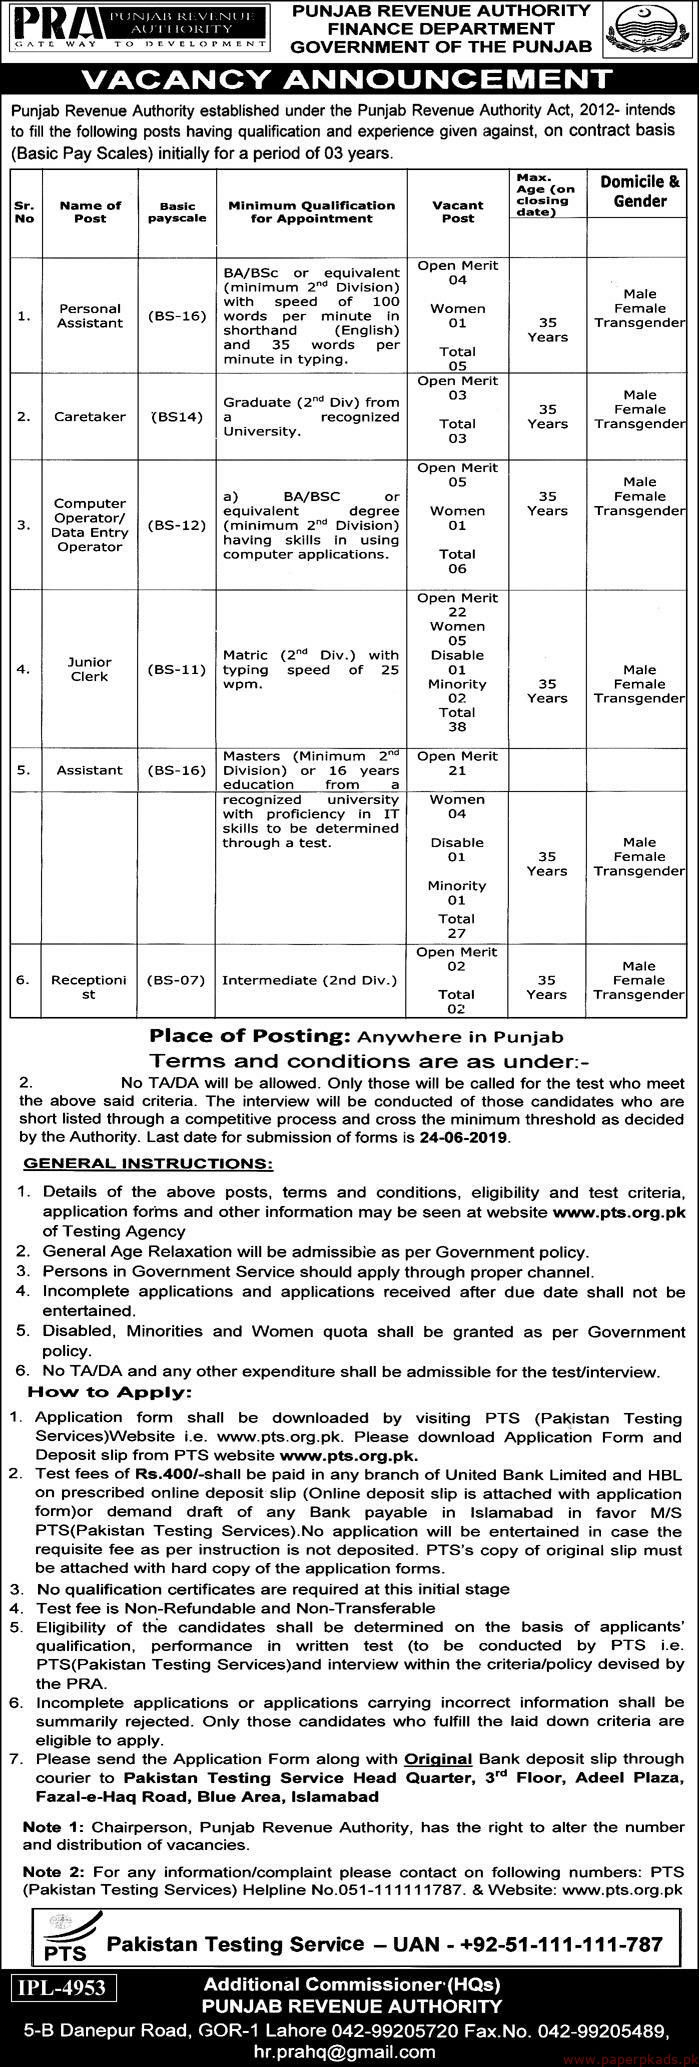 Punjab Revenue Authority Jobs 2019 Latest